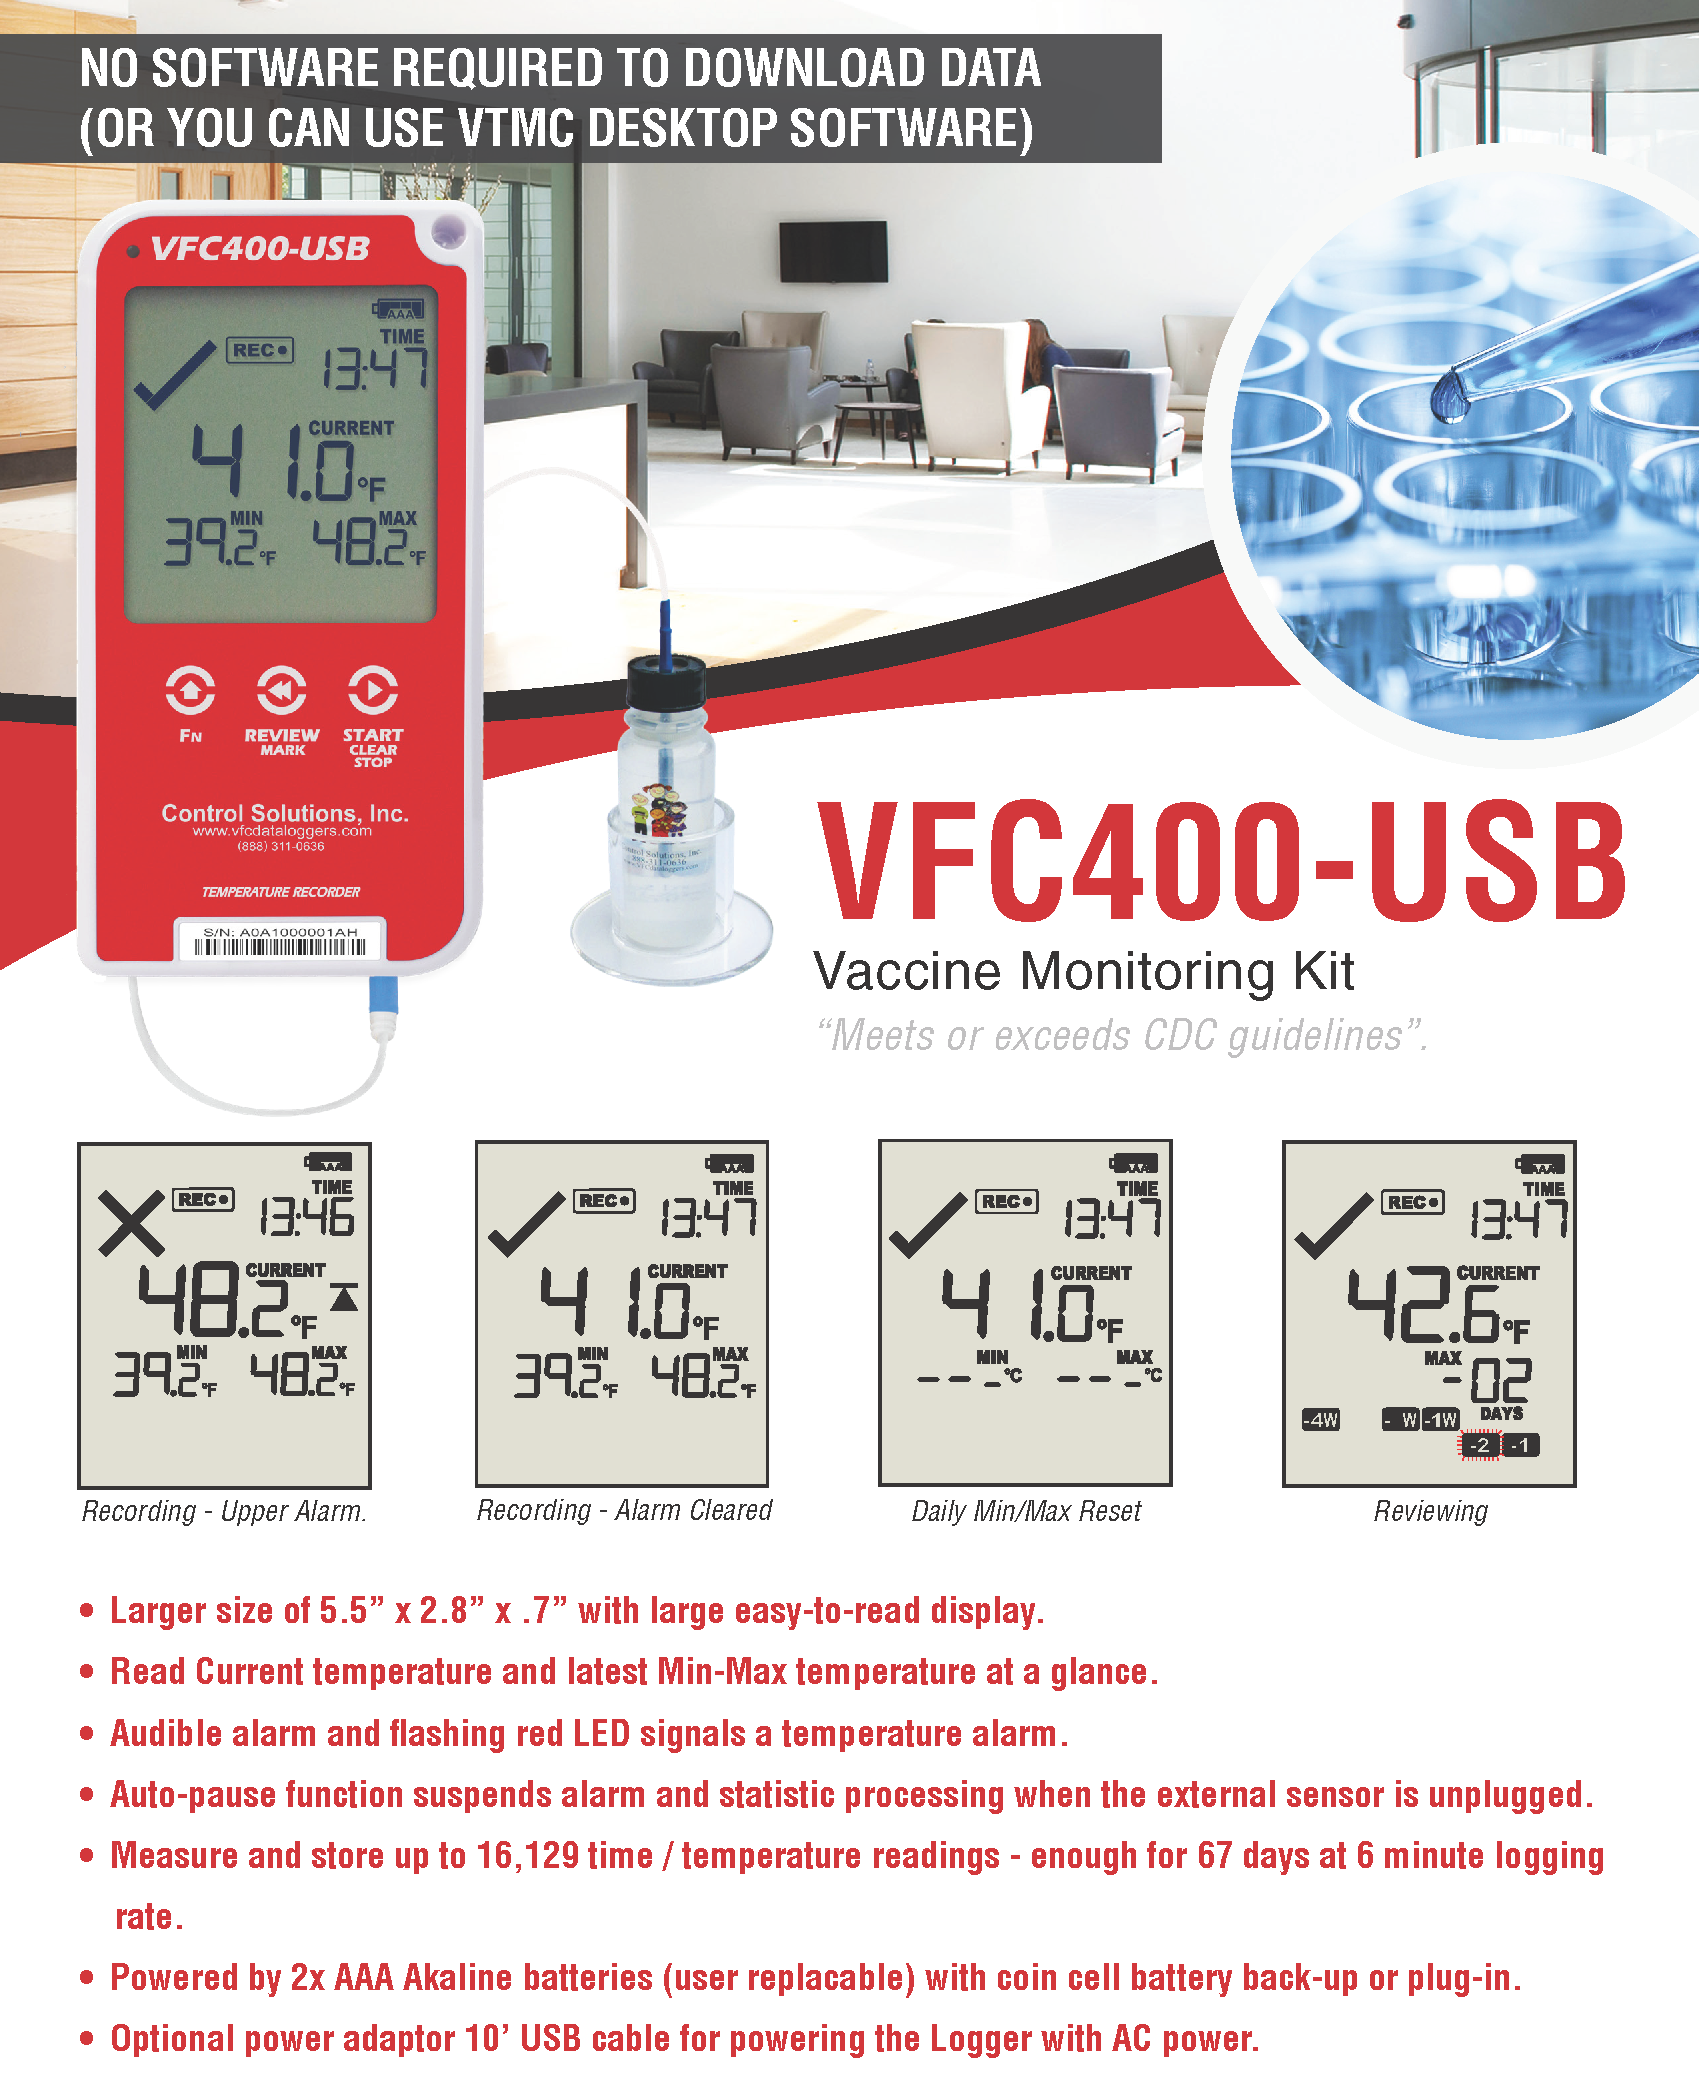 vfc400-usb-flyer-cropped.png